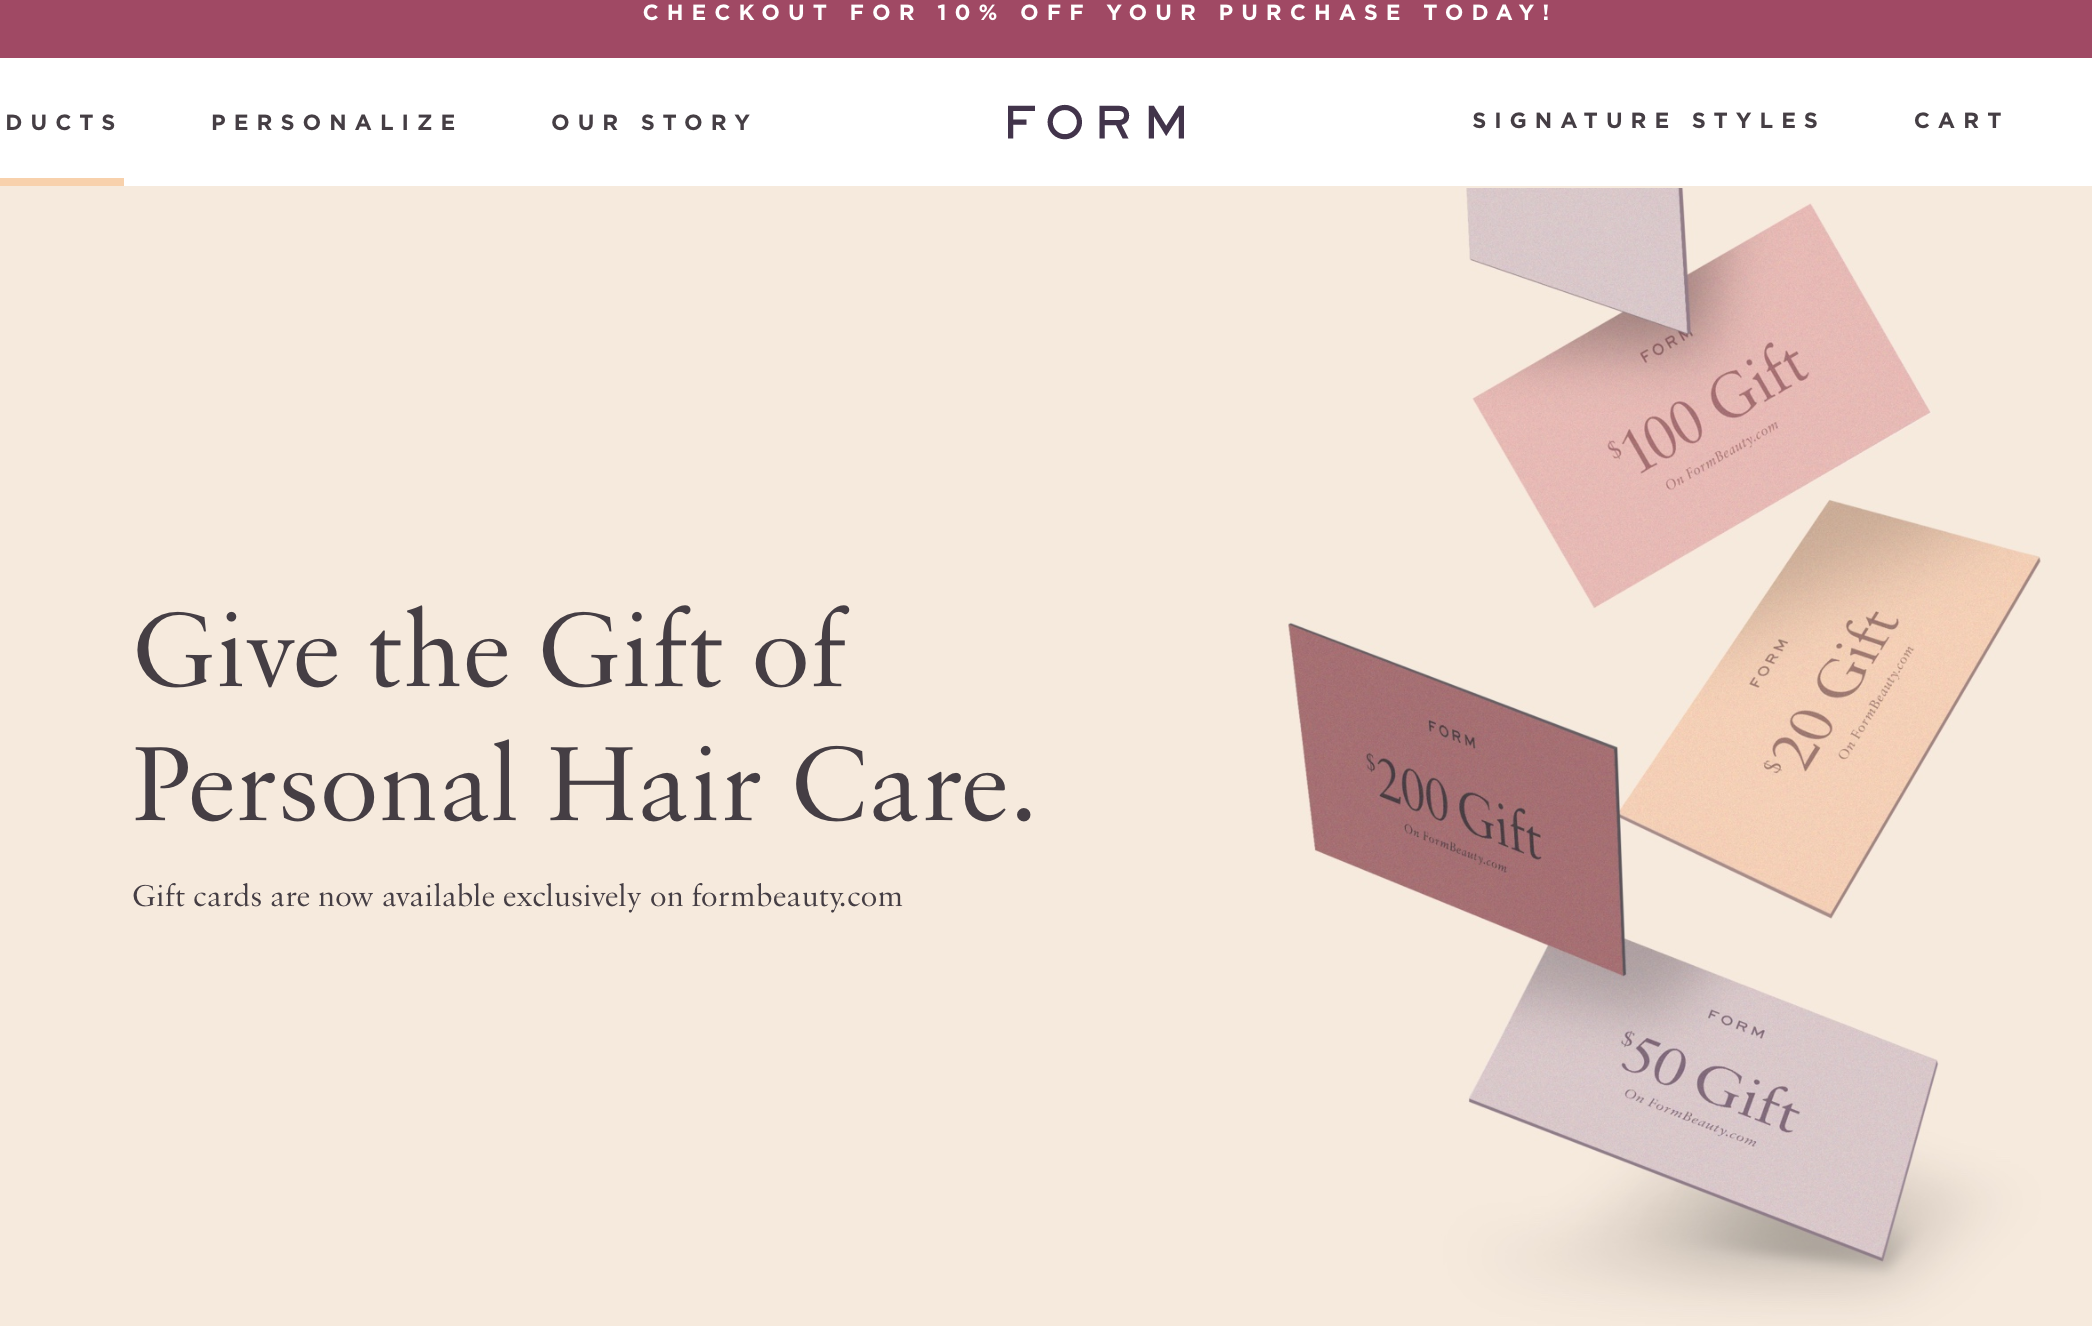 Shop Form Beauty With Me! - SHOP HERE